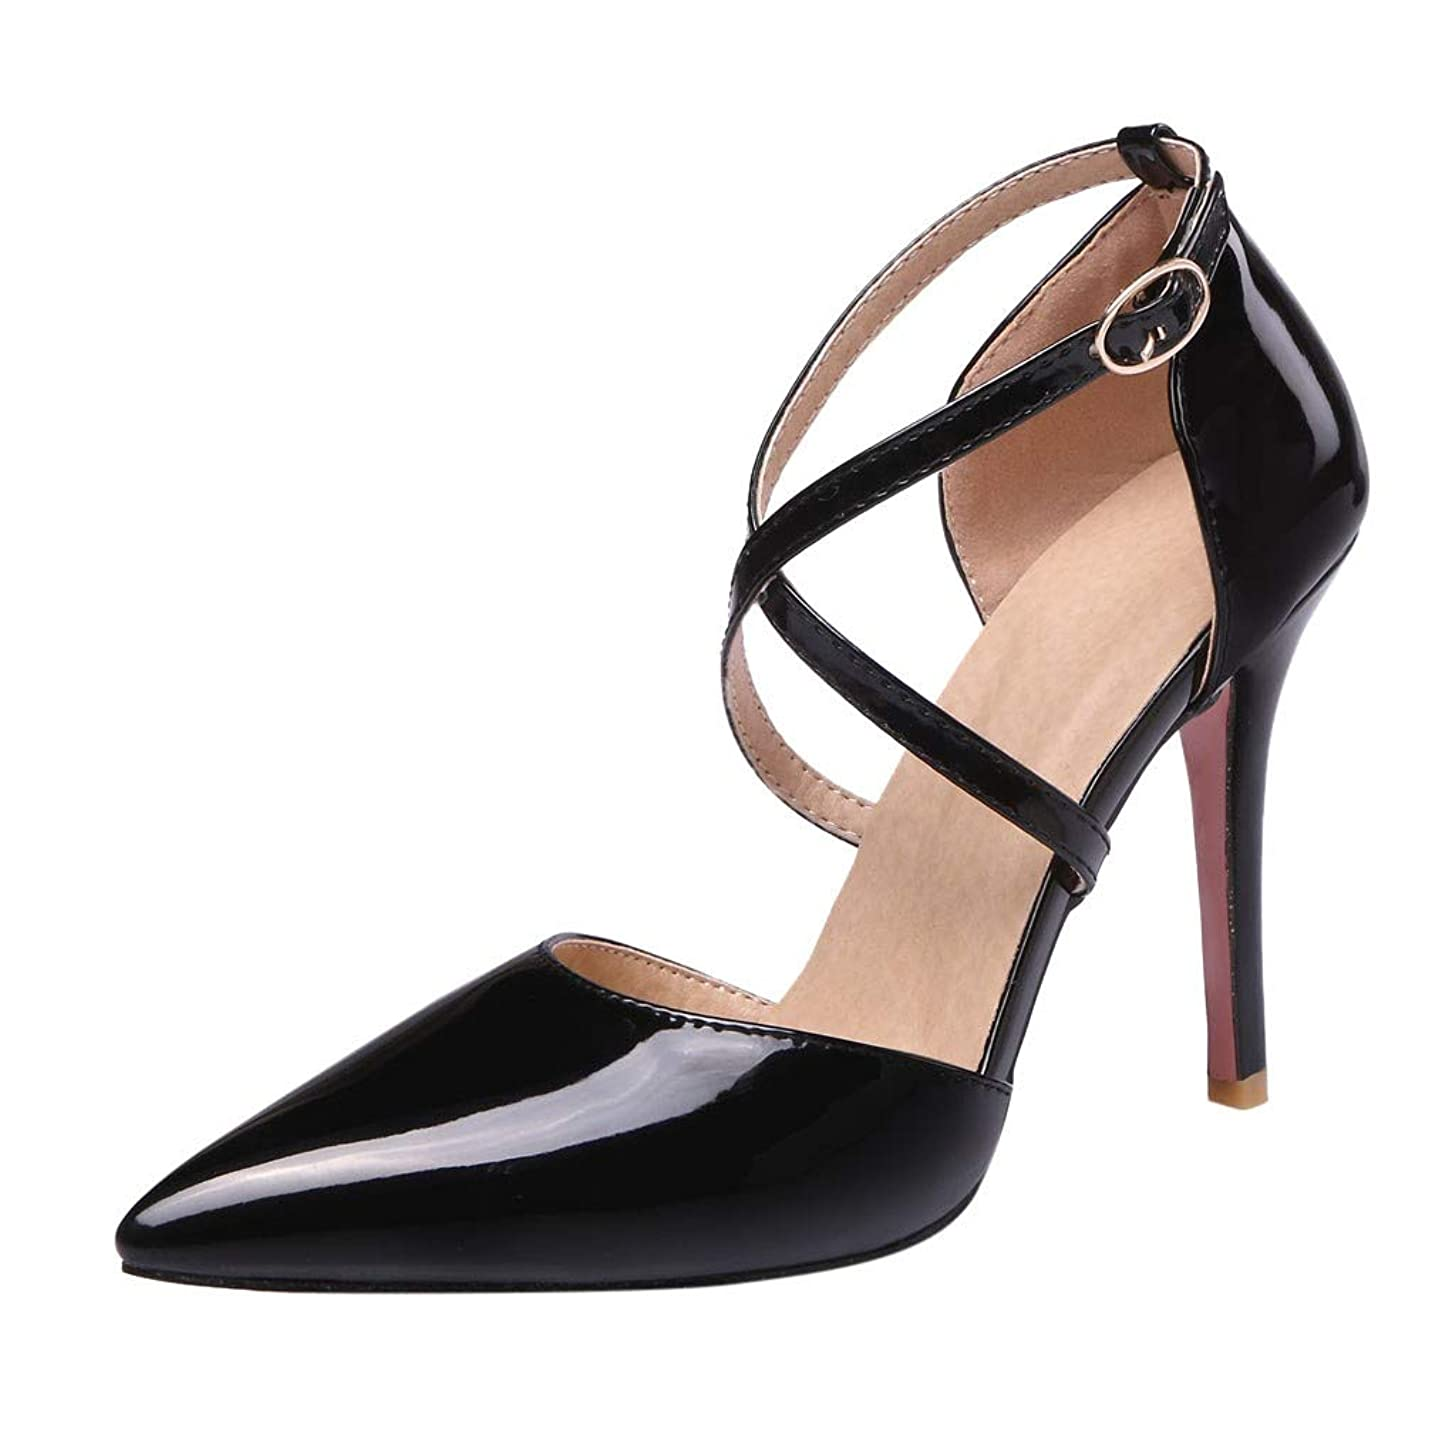 Claystyle Womens Closed Toe High Heel Dress Party Pump Sandals Cross Straps Pointed Casual Shoes